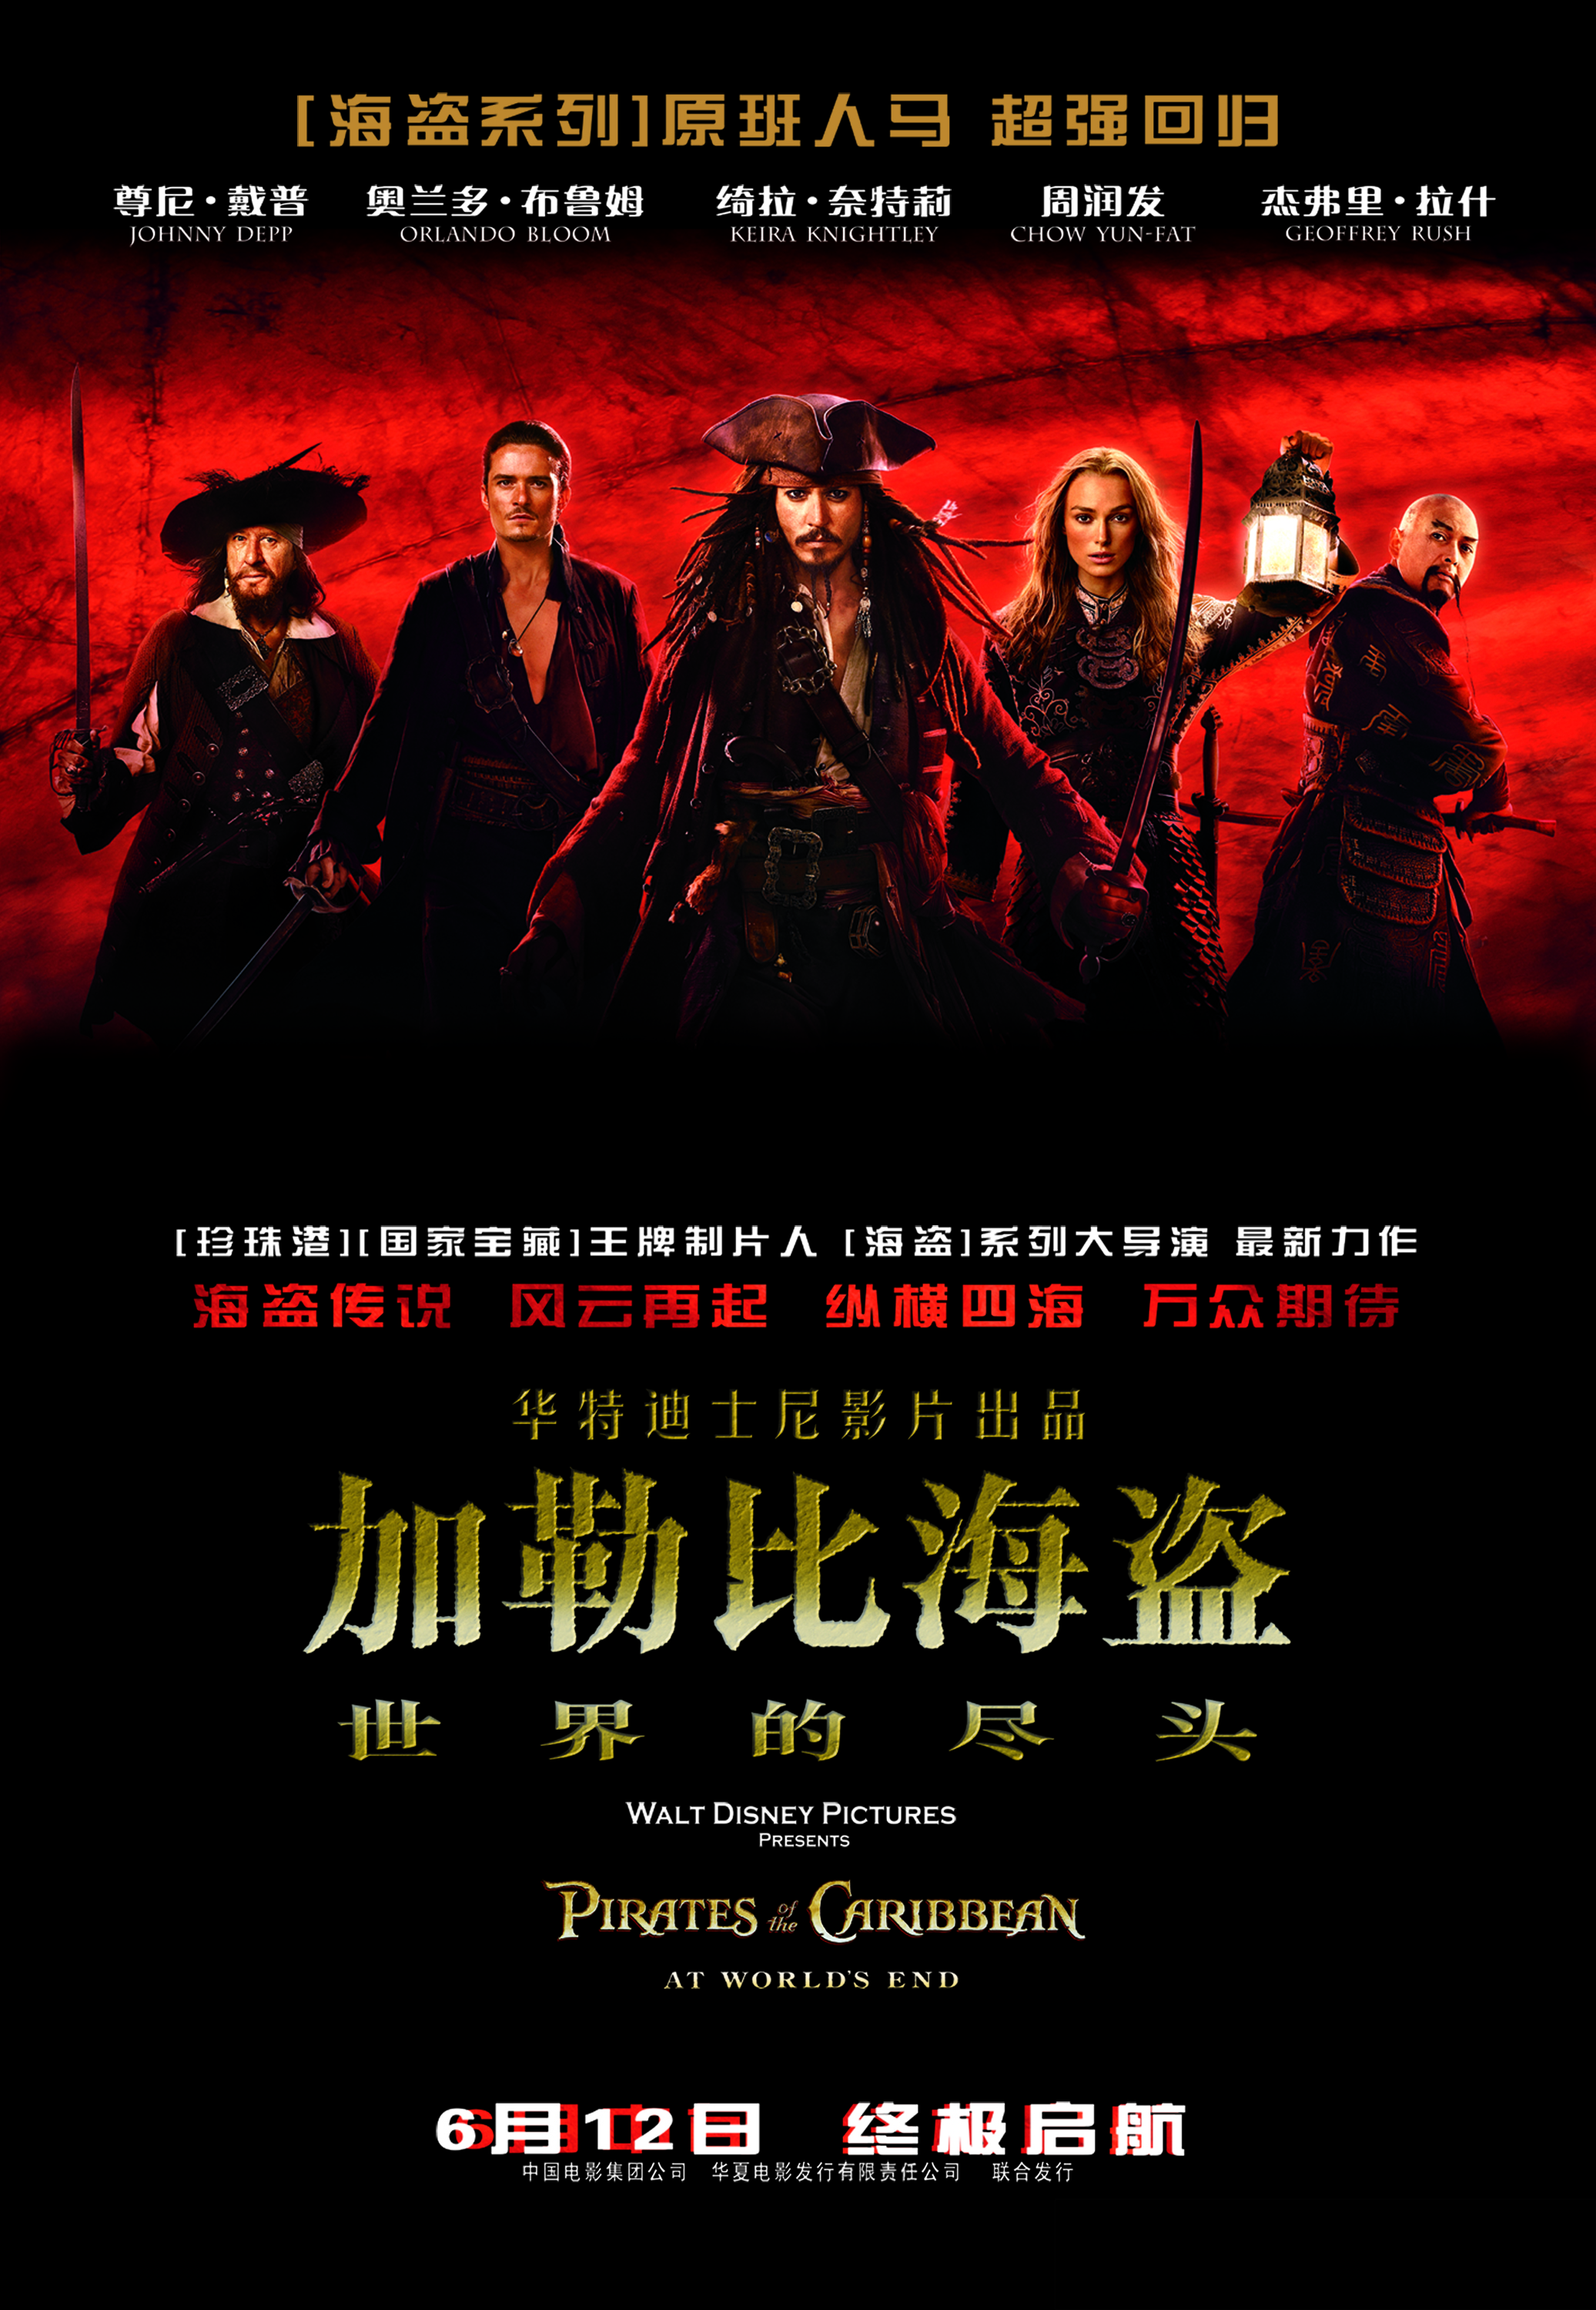 Movie Poster Background, Poster, Celebrities, Pirates Background ...